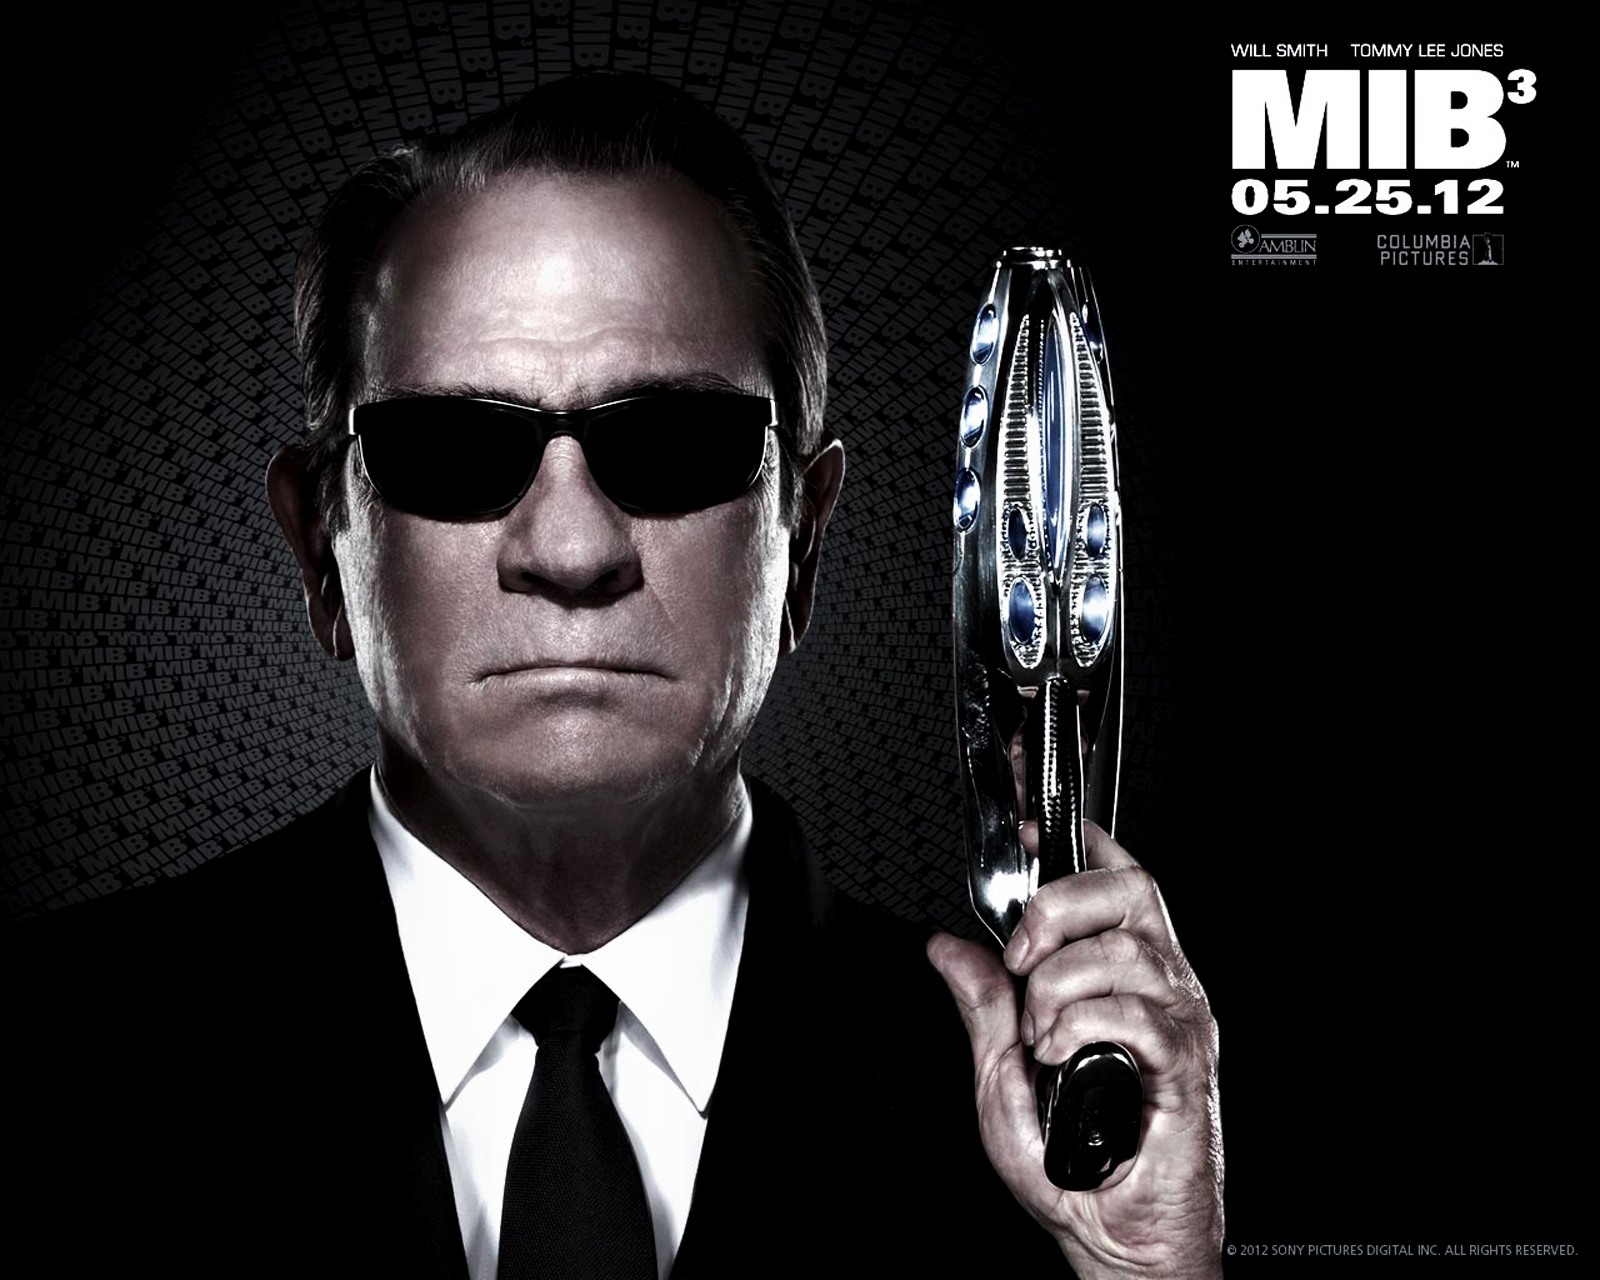 http://4.bp.blogspot.com/-U1wG0dG-Wlo/T4NSv9UNWHI/AAAAAAAABPI/9WjPZNIUu7M/s1600/Men_in_Black_Tommy_Lee_Jones_With_Gun_Poster-Vvallpaper.Net.jpg